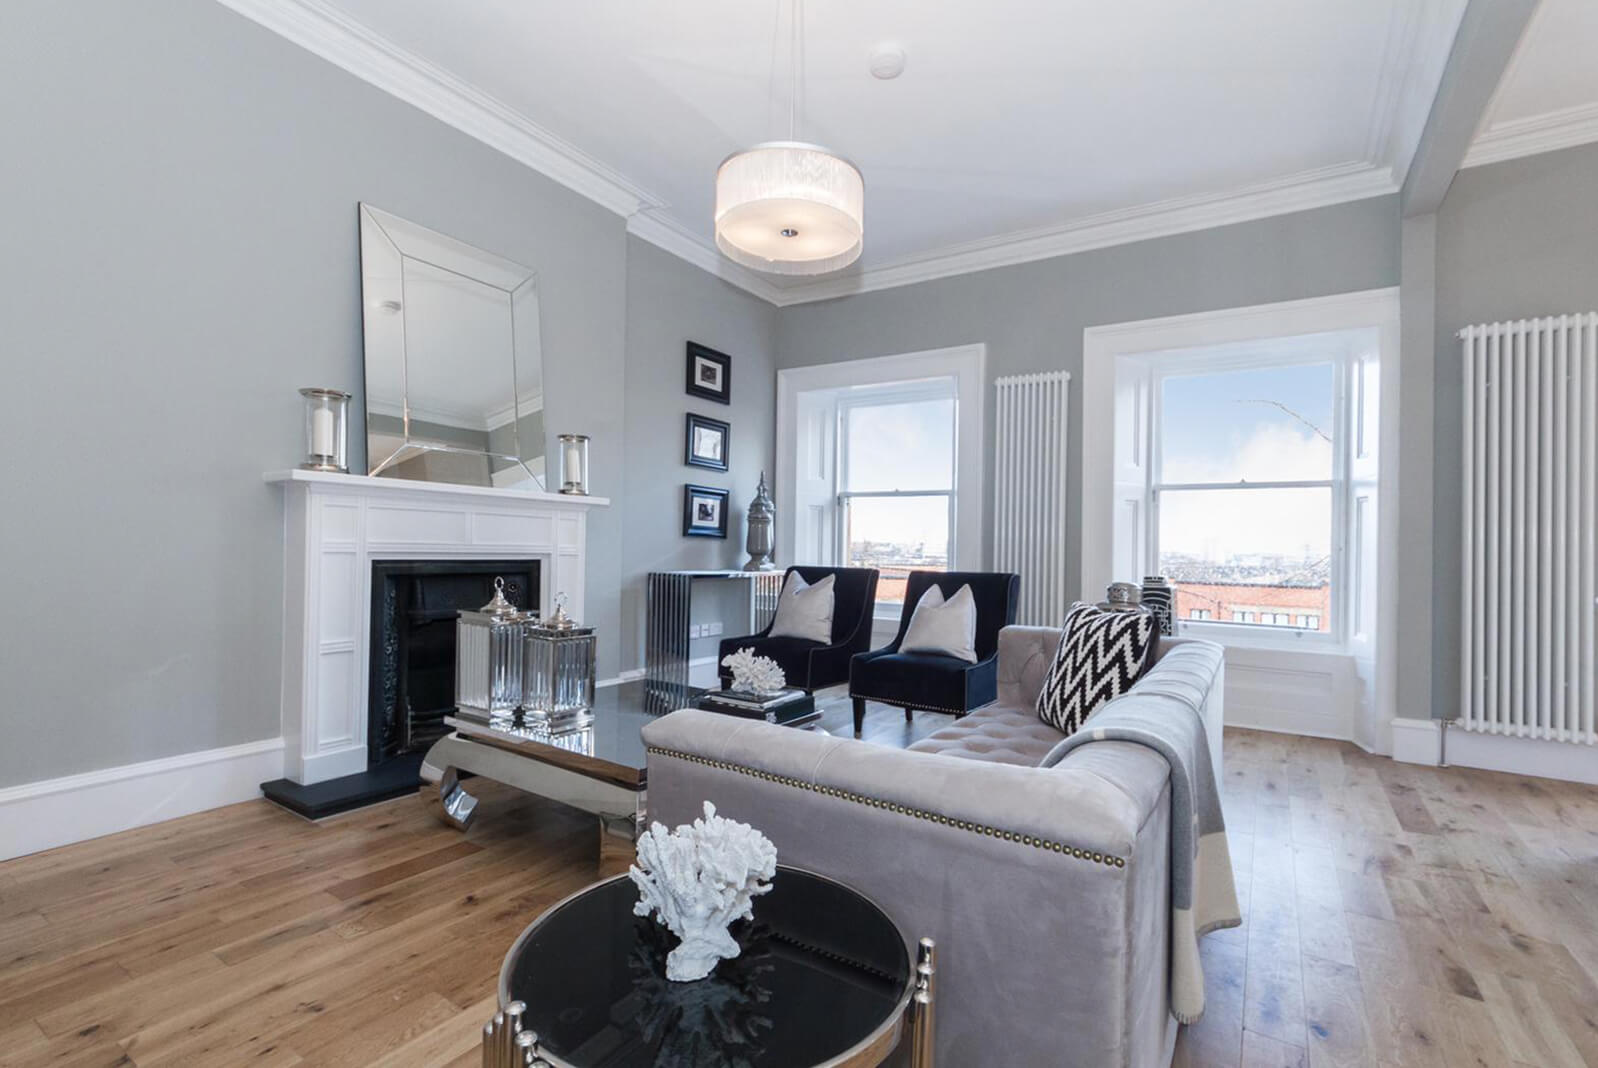 Large furnished lounge with wooden flooring, two windows and period style fireplace